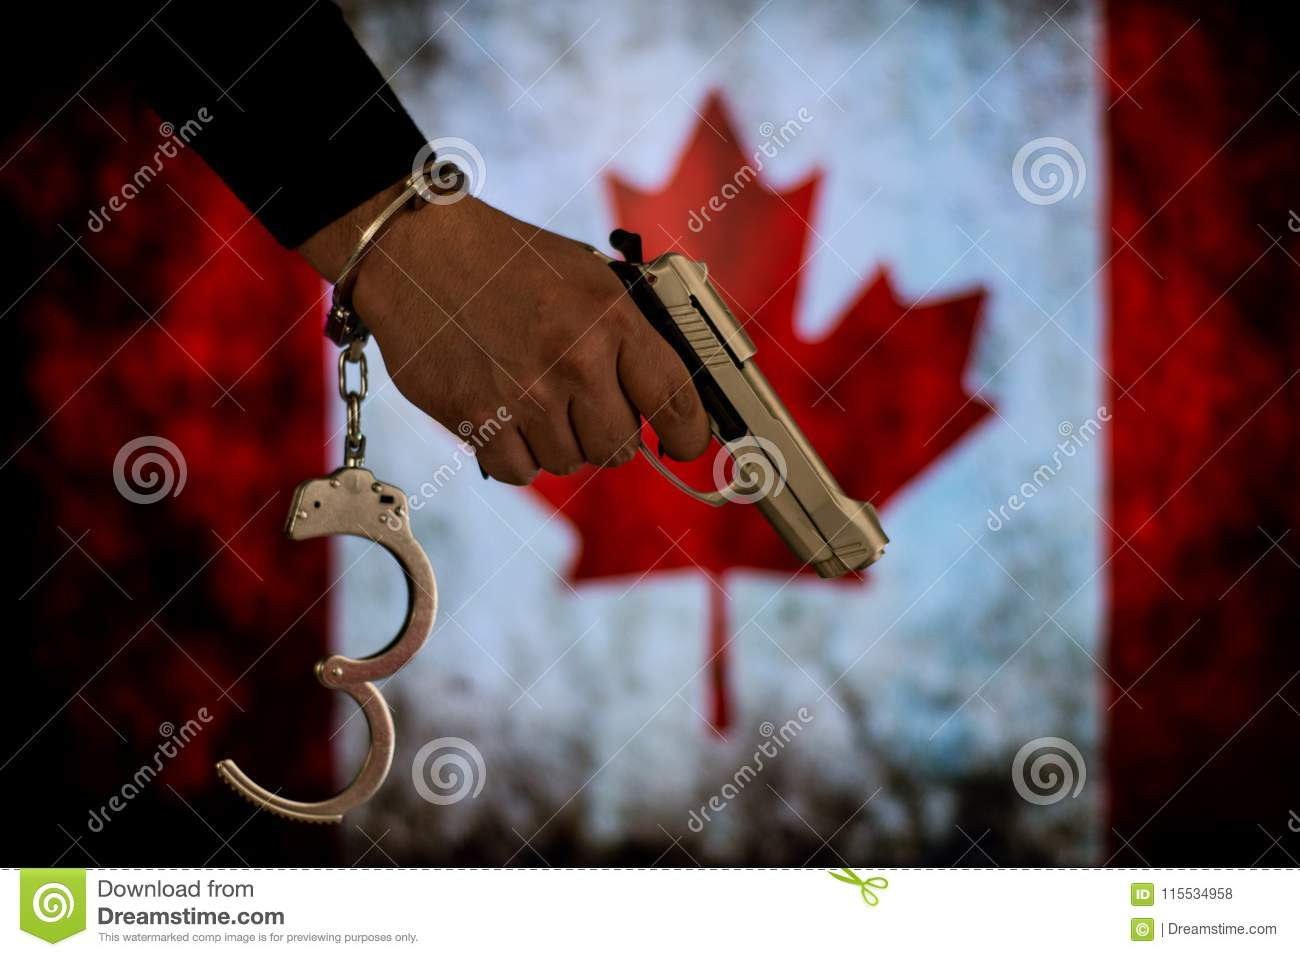 Handcuffed hand in front of the country flag. crime concept